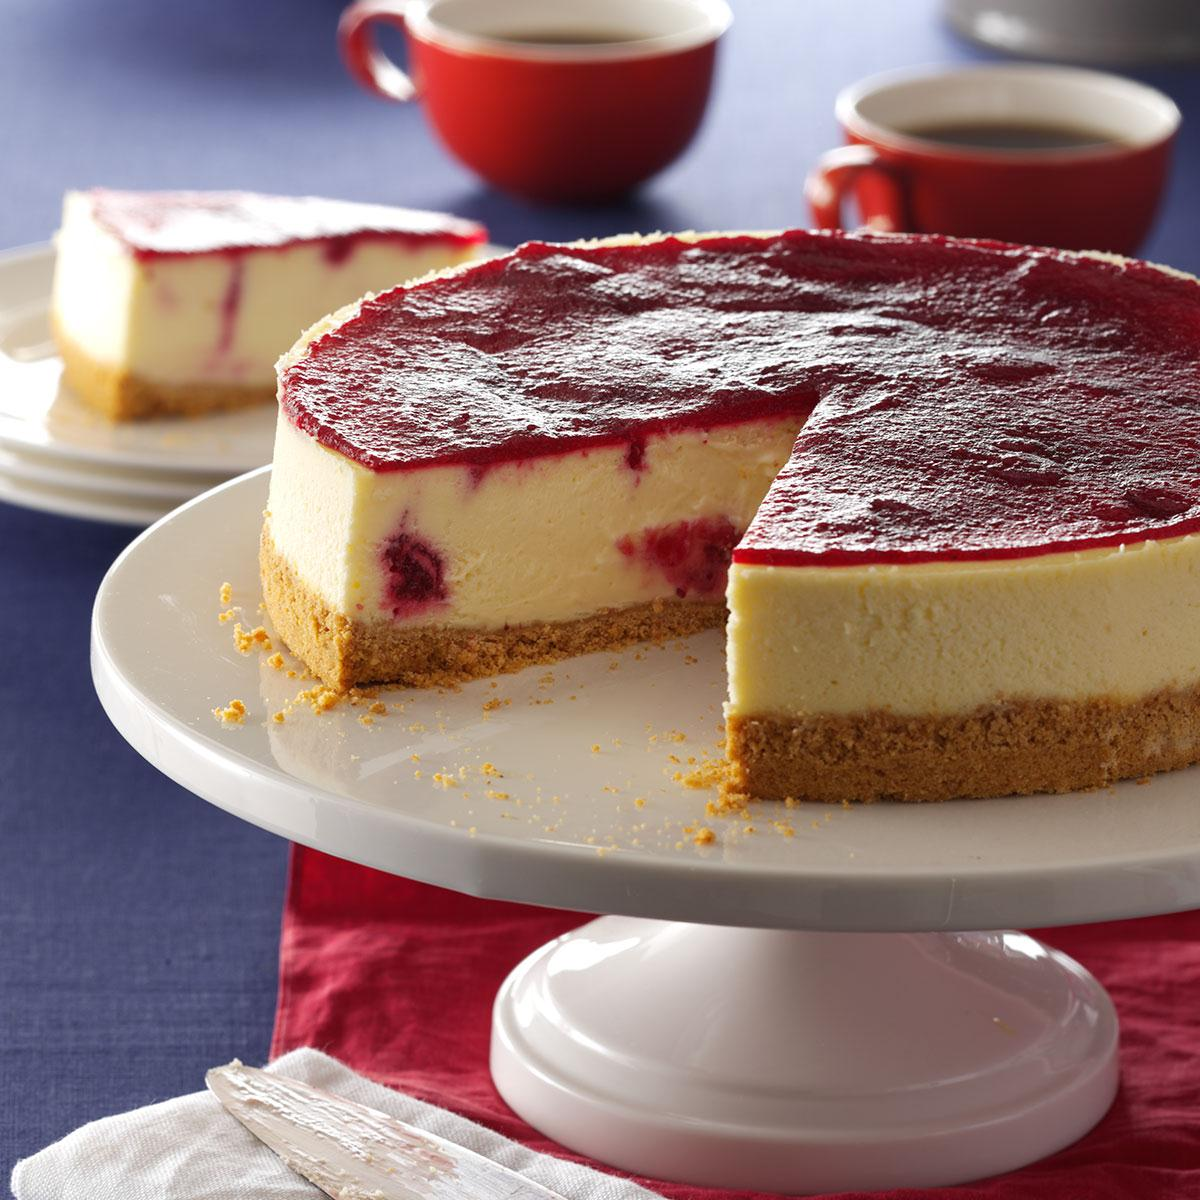 Cranberry Cheesecake image